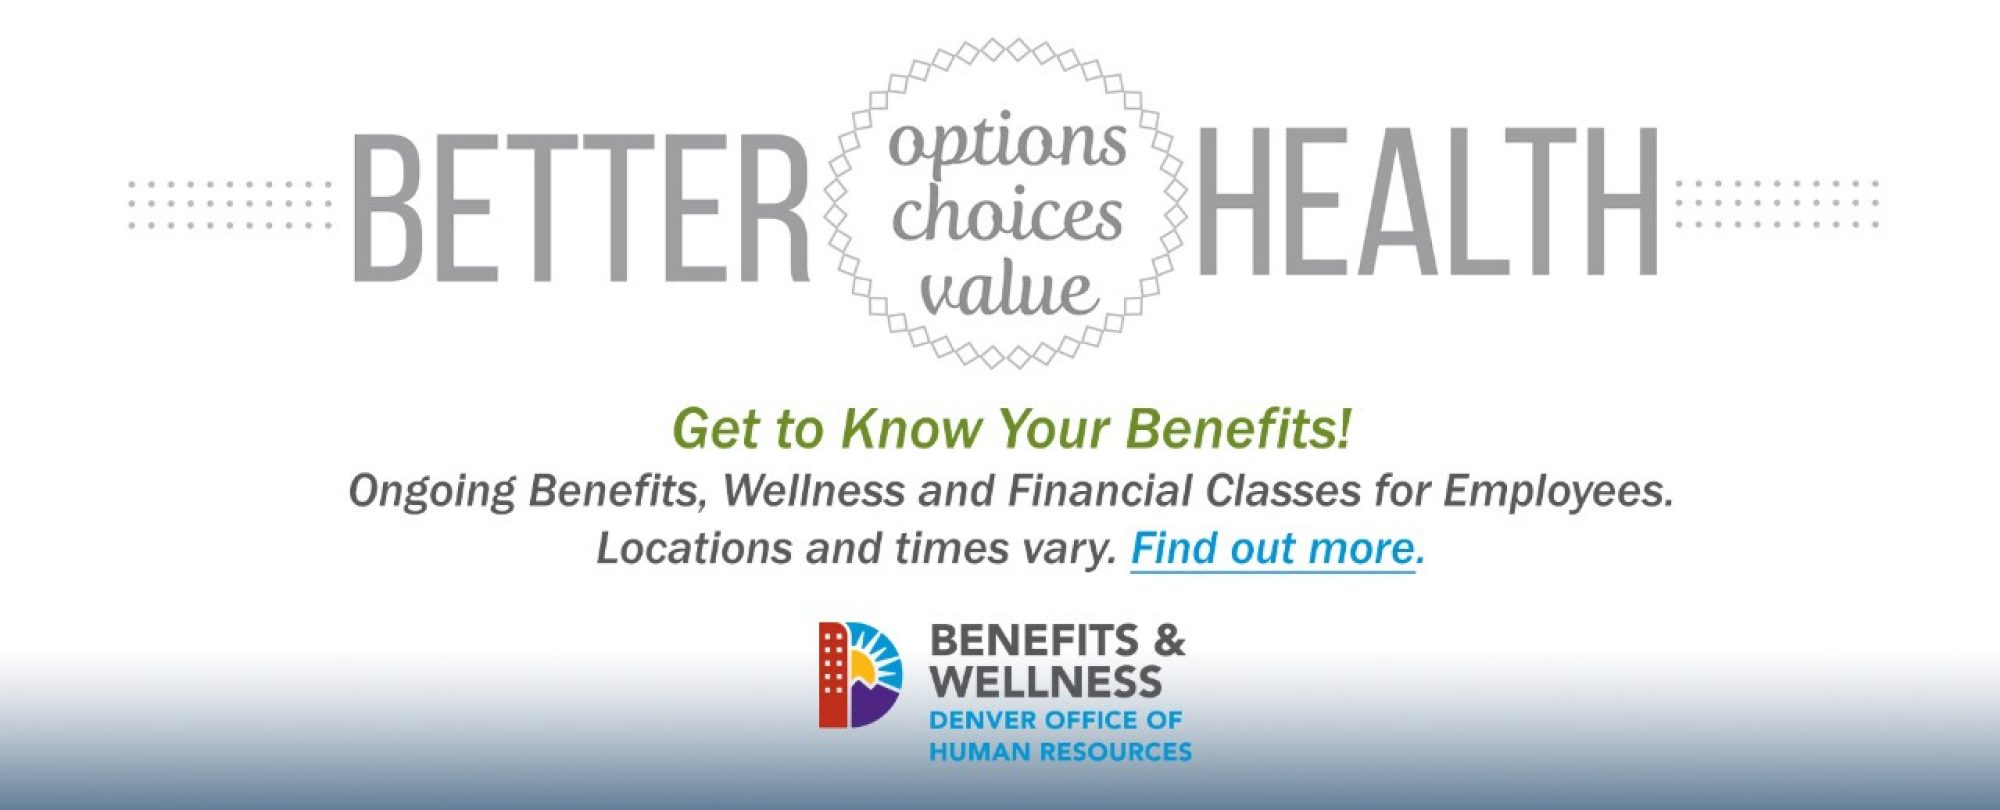 Get to know your benefits through ongoing Benefits, Wellness and Financial Classes for employees.